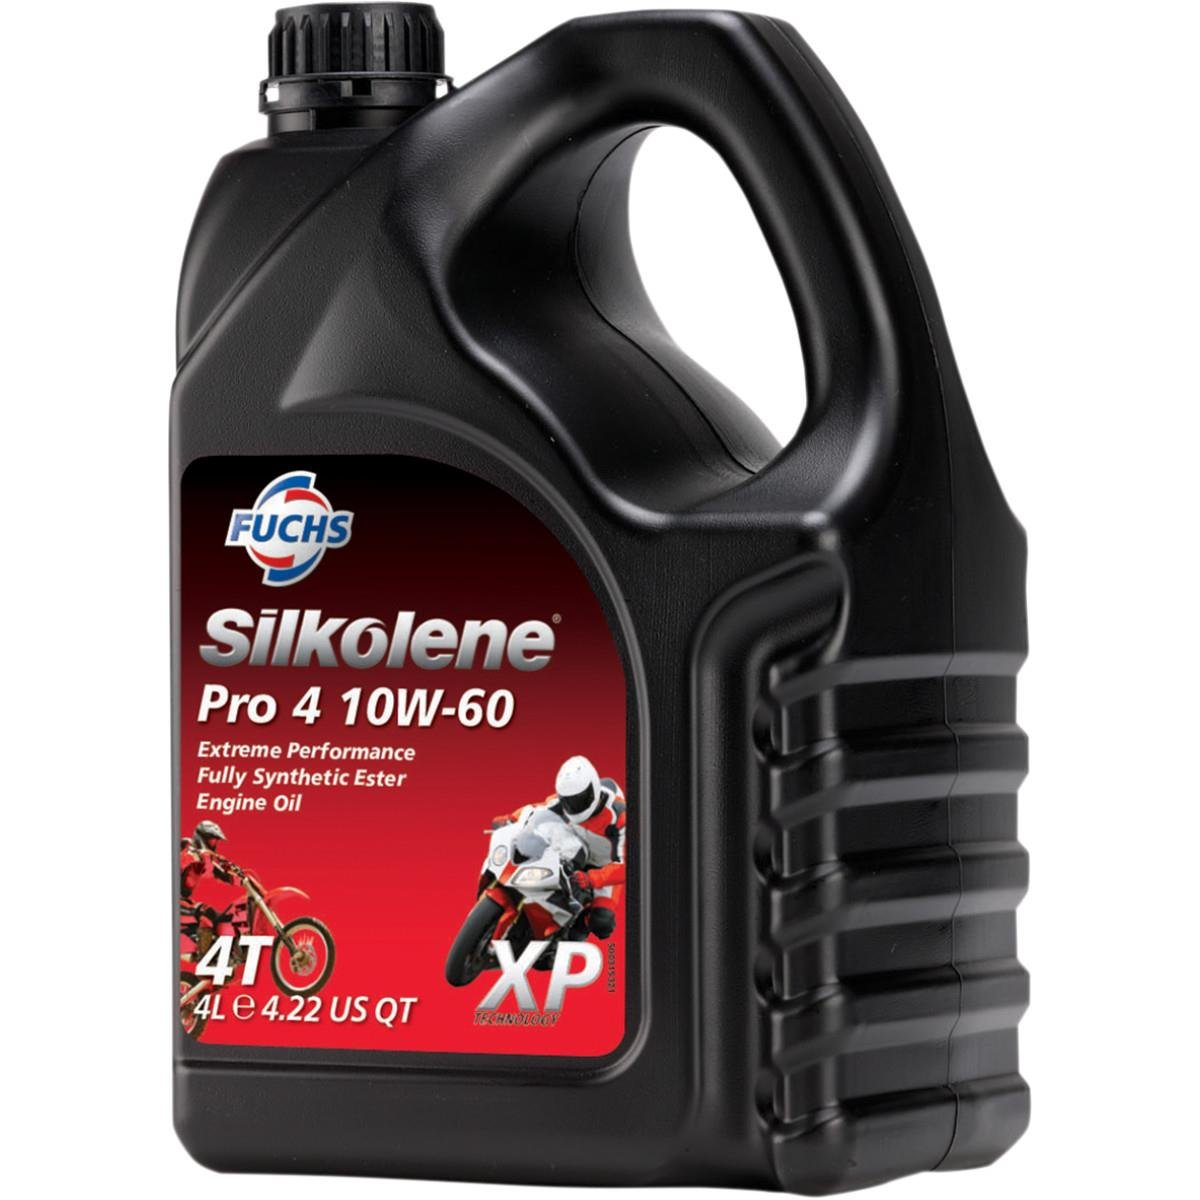 Silkolene Pro 4 XP 10W60 Engine Oil 4L 60098978